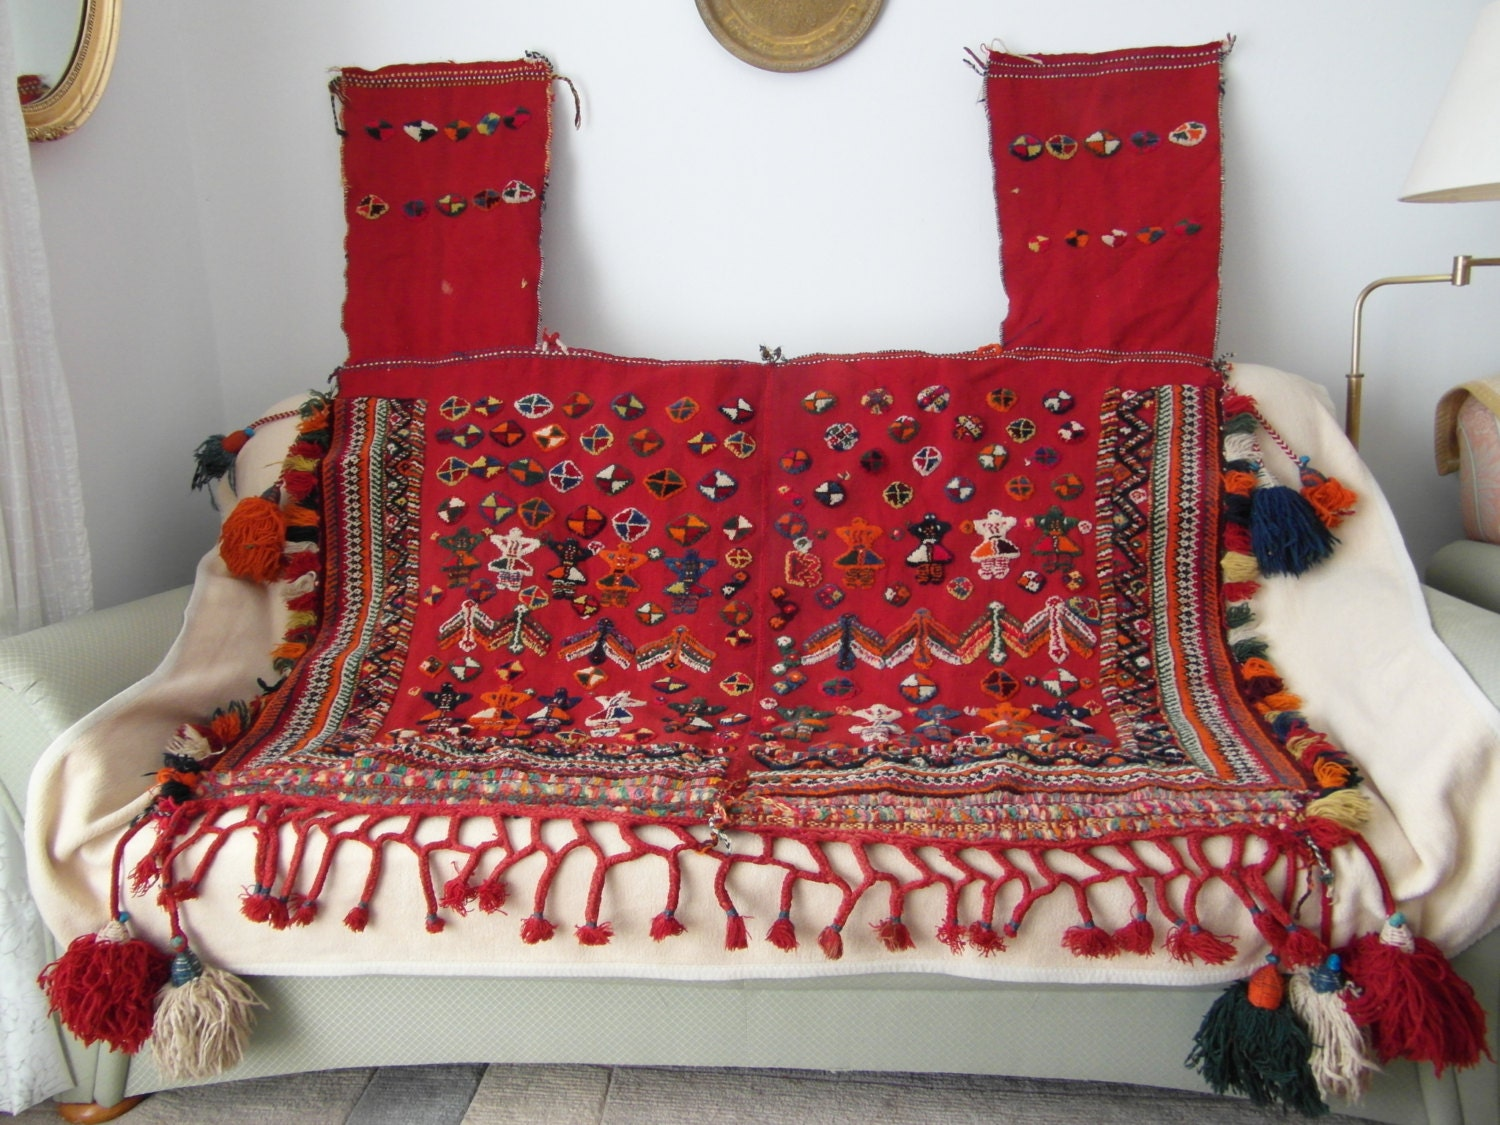 wall hanging large horse blanket camel quilt handwoven persian. Black Bedroom Furniture Sets. Home Design Ideas